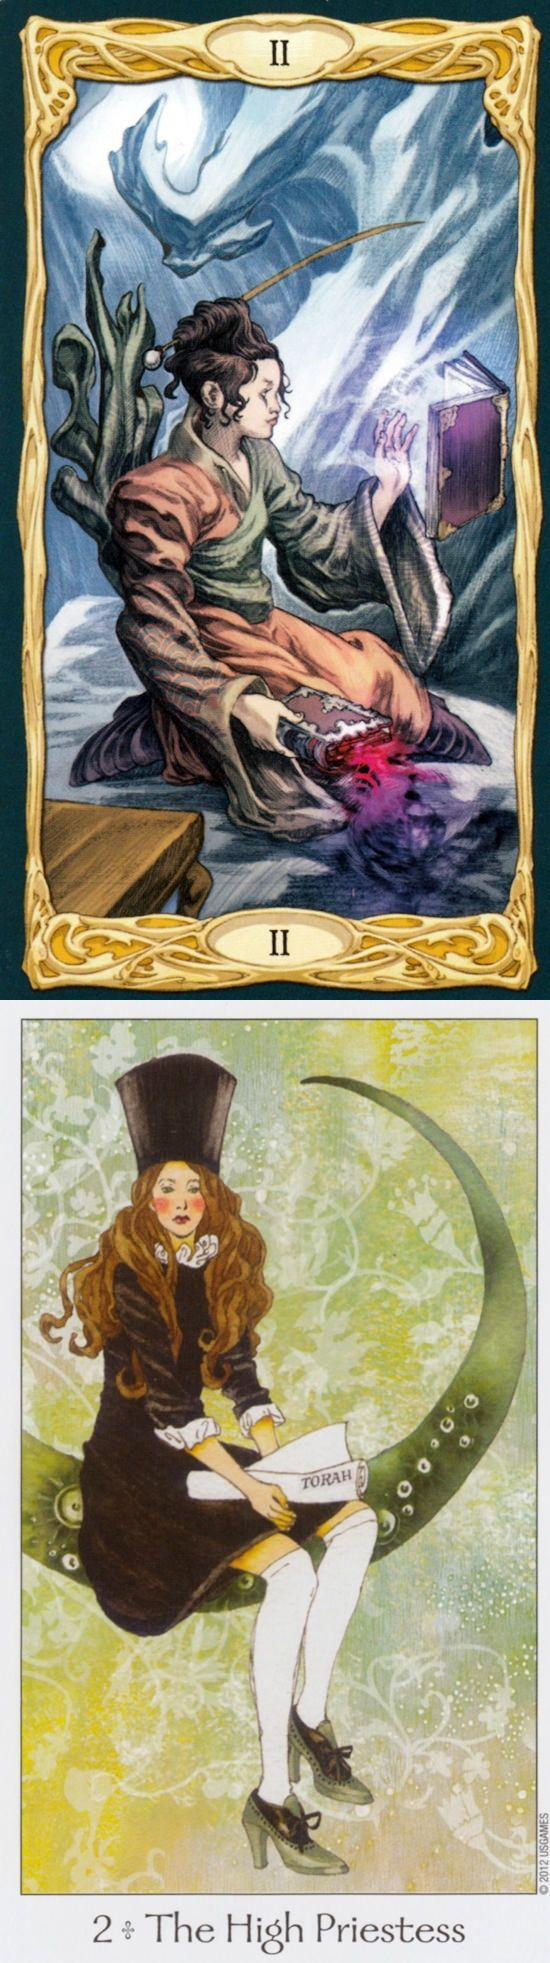 THE HIGH PRIESTESS: inner voice and repressed/unheard inner voice (reverse). Epic Tarot deck and Dreaming Way Tarot deck: lotus tarot card reading, tarod card and free tarot. New tarot reading and divination methods. #witchy #magician #wicca #wands #wheeloffortune